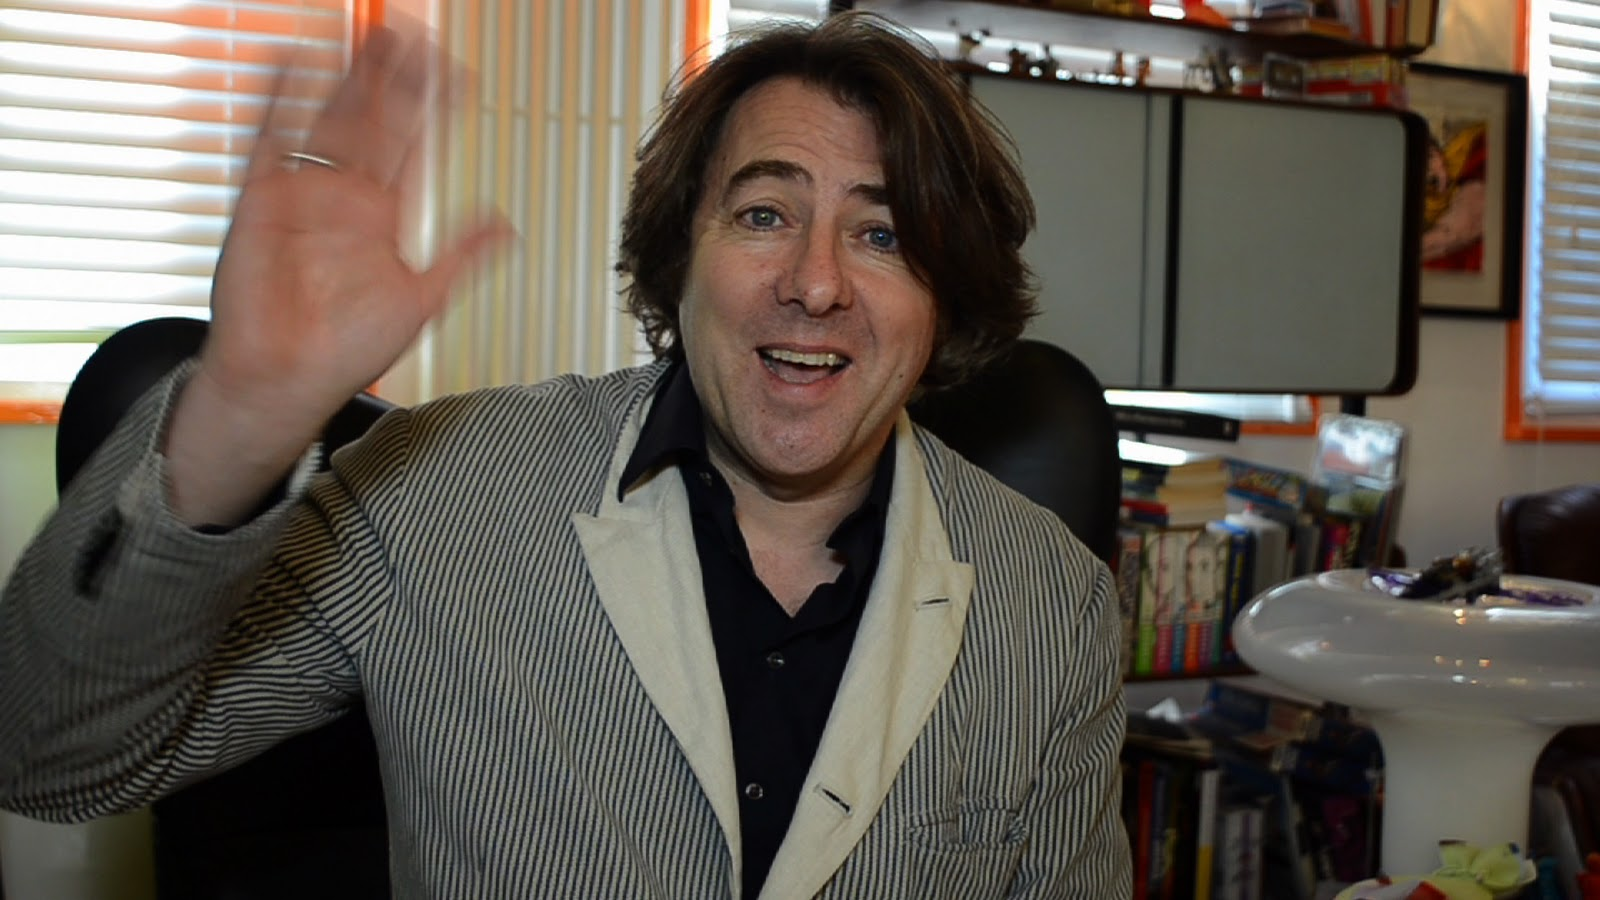 Filmed Jonathan Ross To Promote London Korean Film Festival